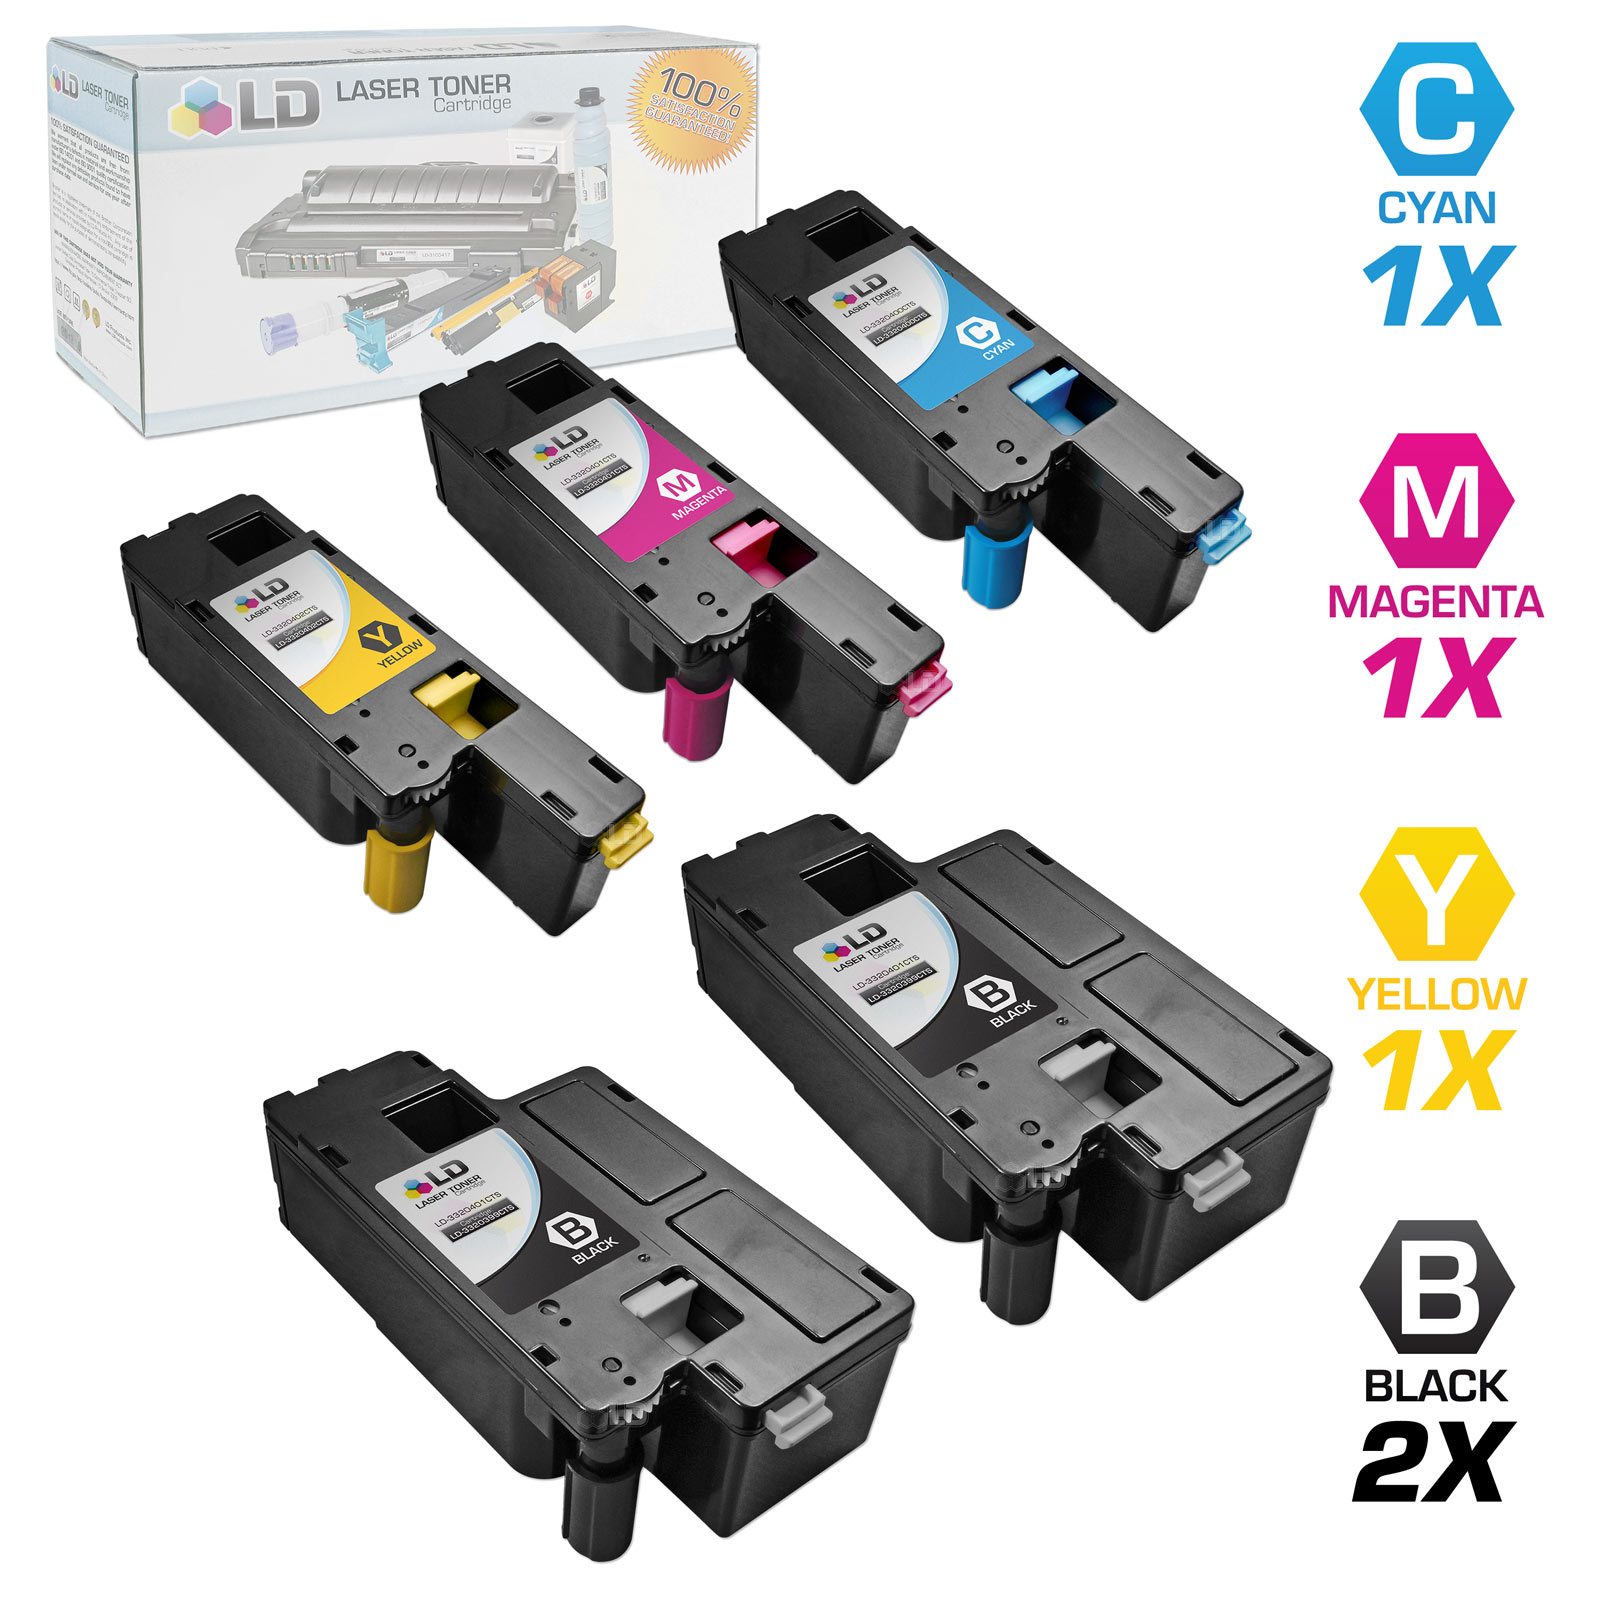 LD Compatible Replacements for Dell Color Laser C1660w Set of 5 Laser Toner Cartridges Includes: 2 332-0399 Black, 1